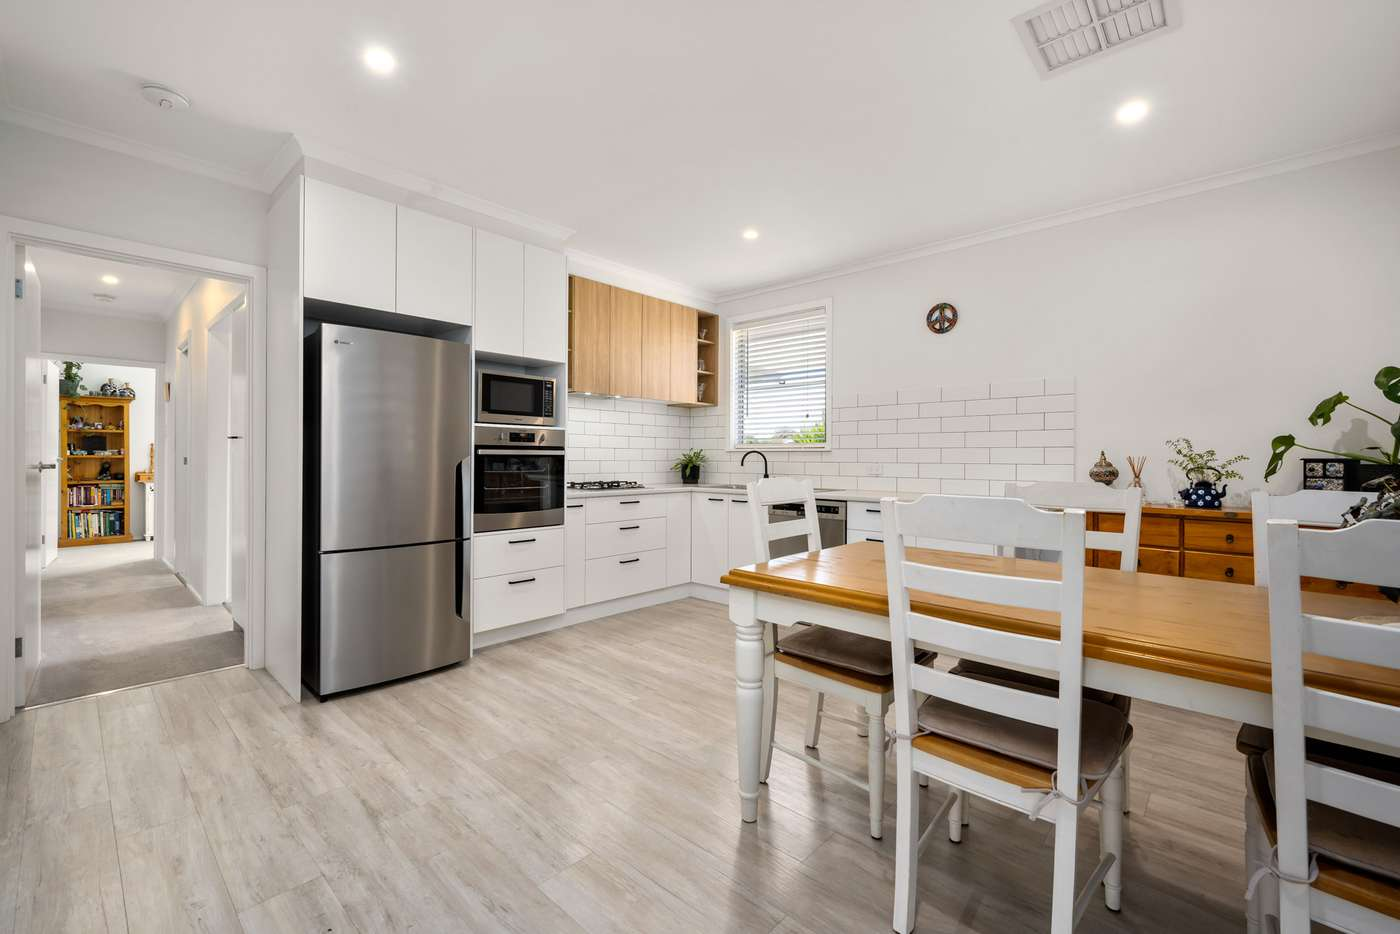 Main view of Homely house listing, 50 Hereford Street, Wodonga VIC 3690